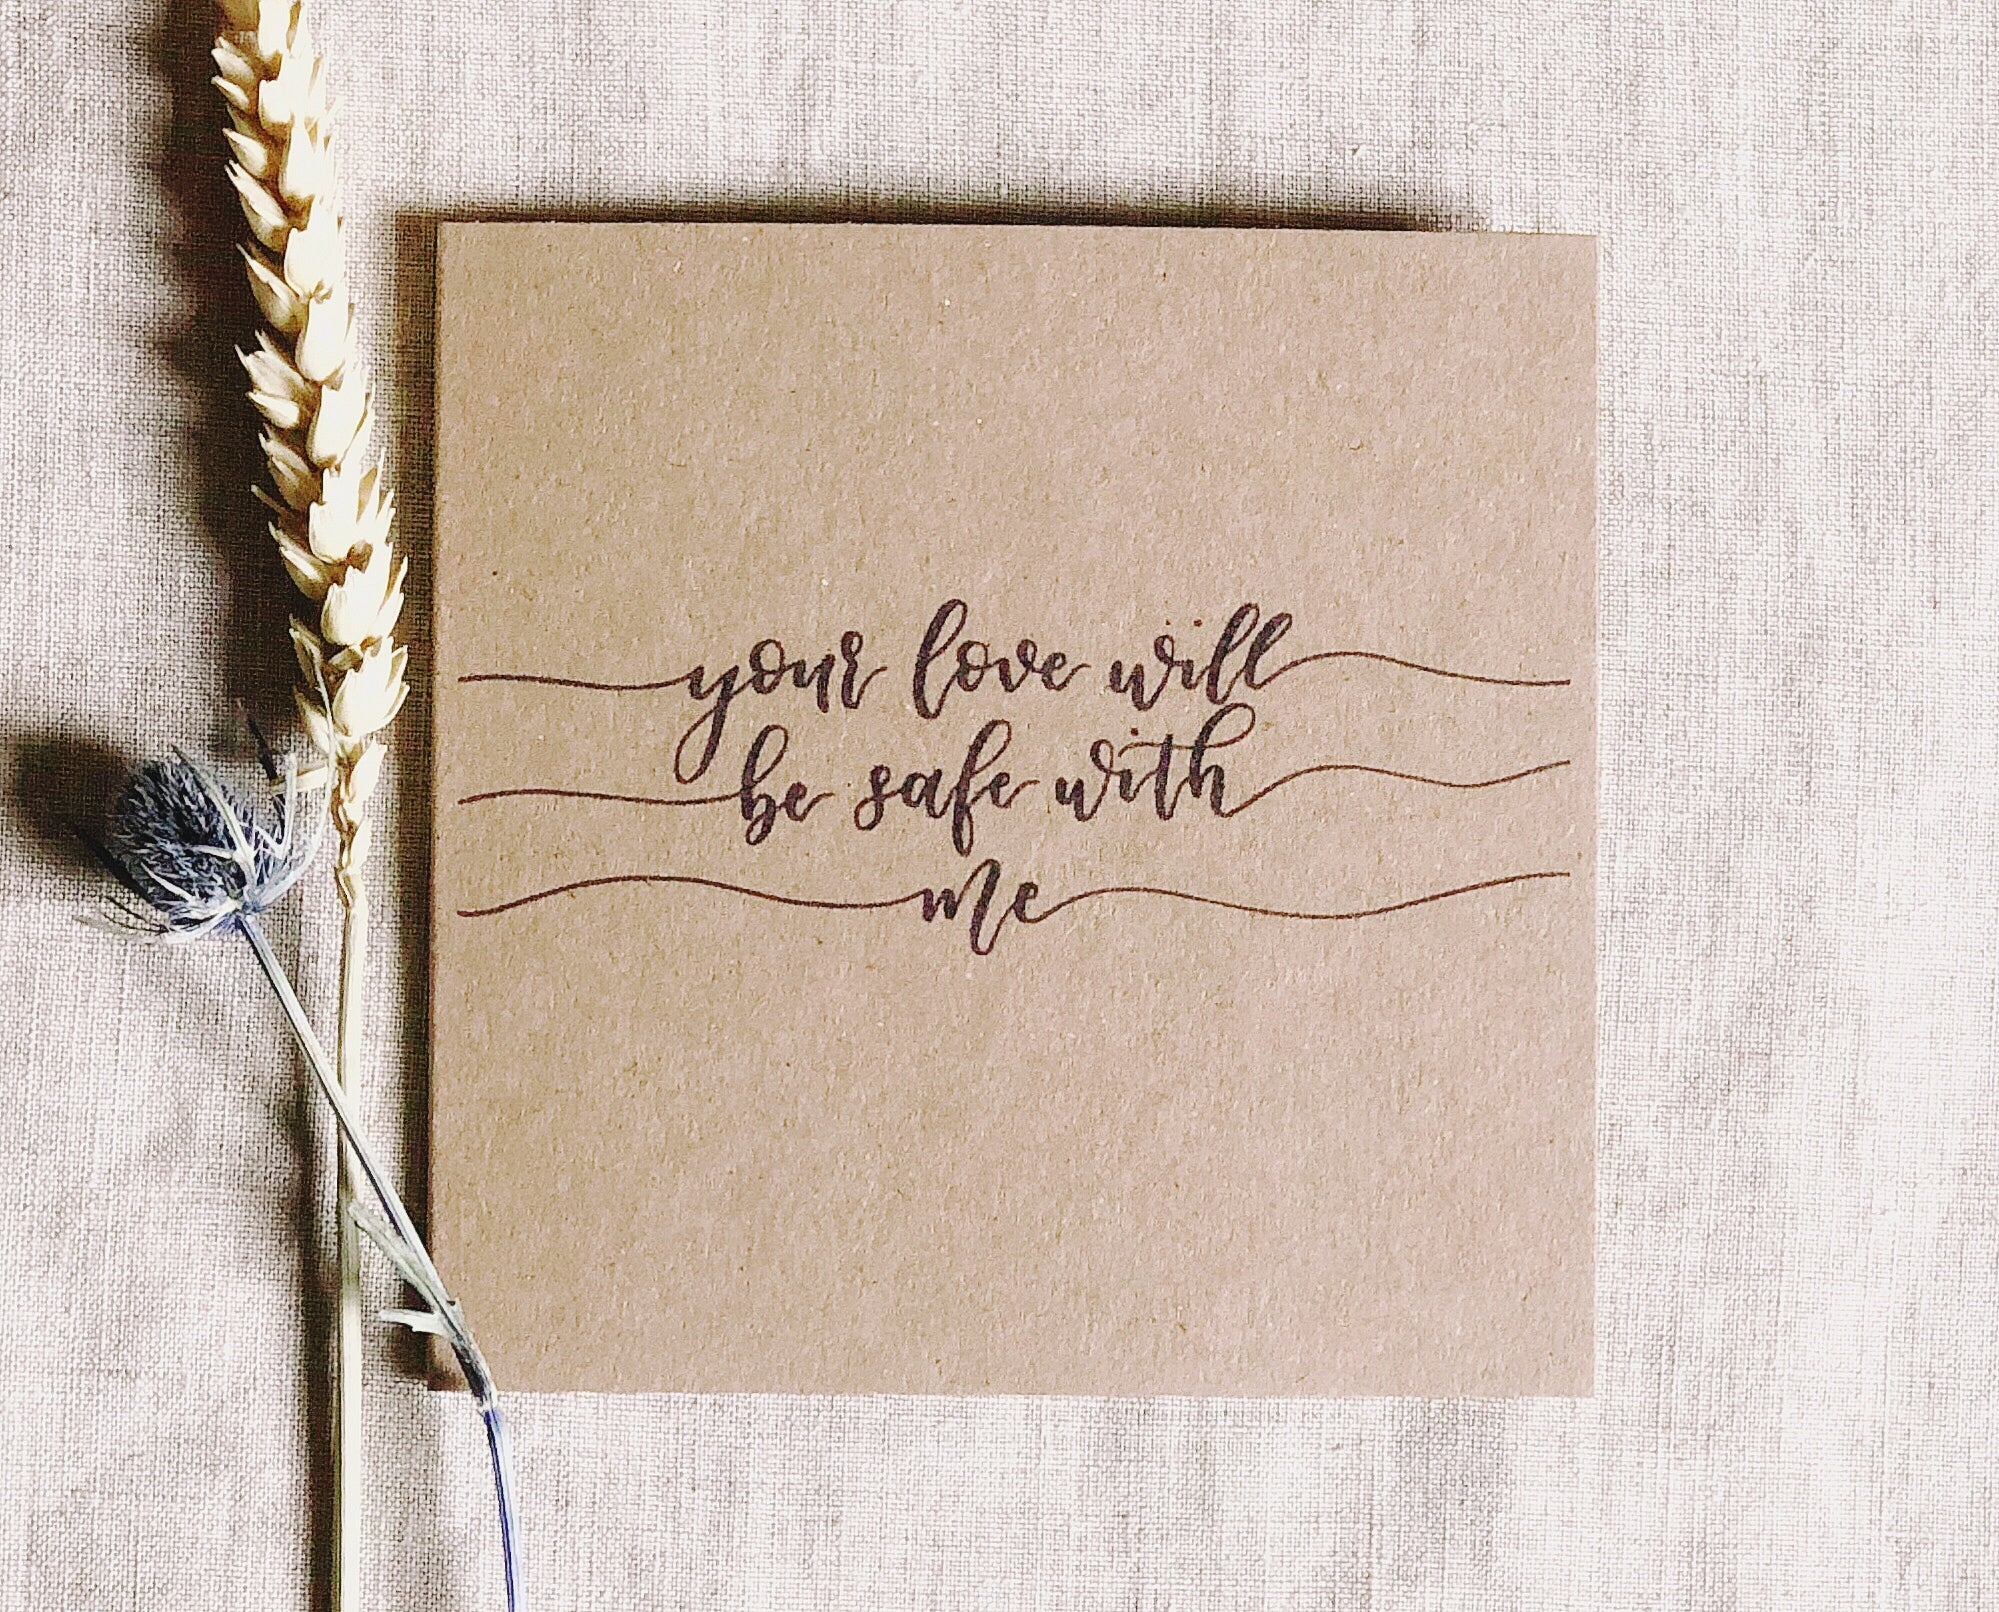 kraft brown card with lyrics written in modern black calligraphy